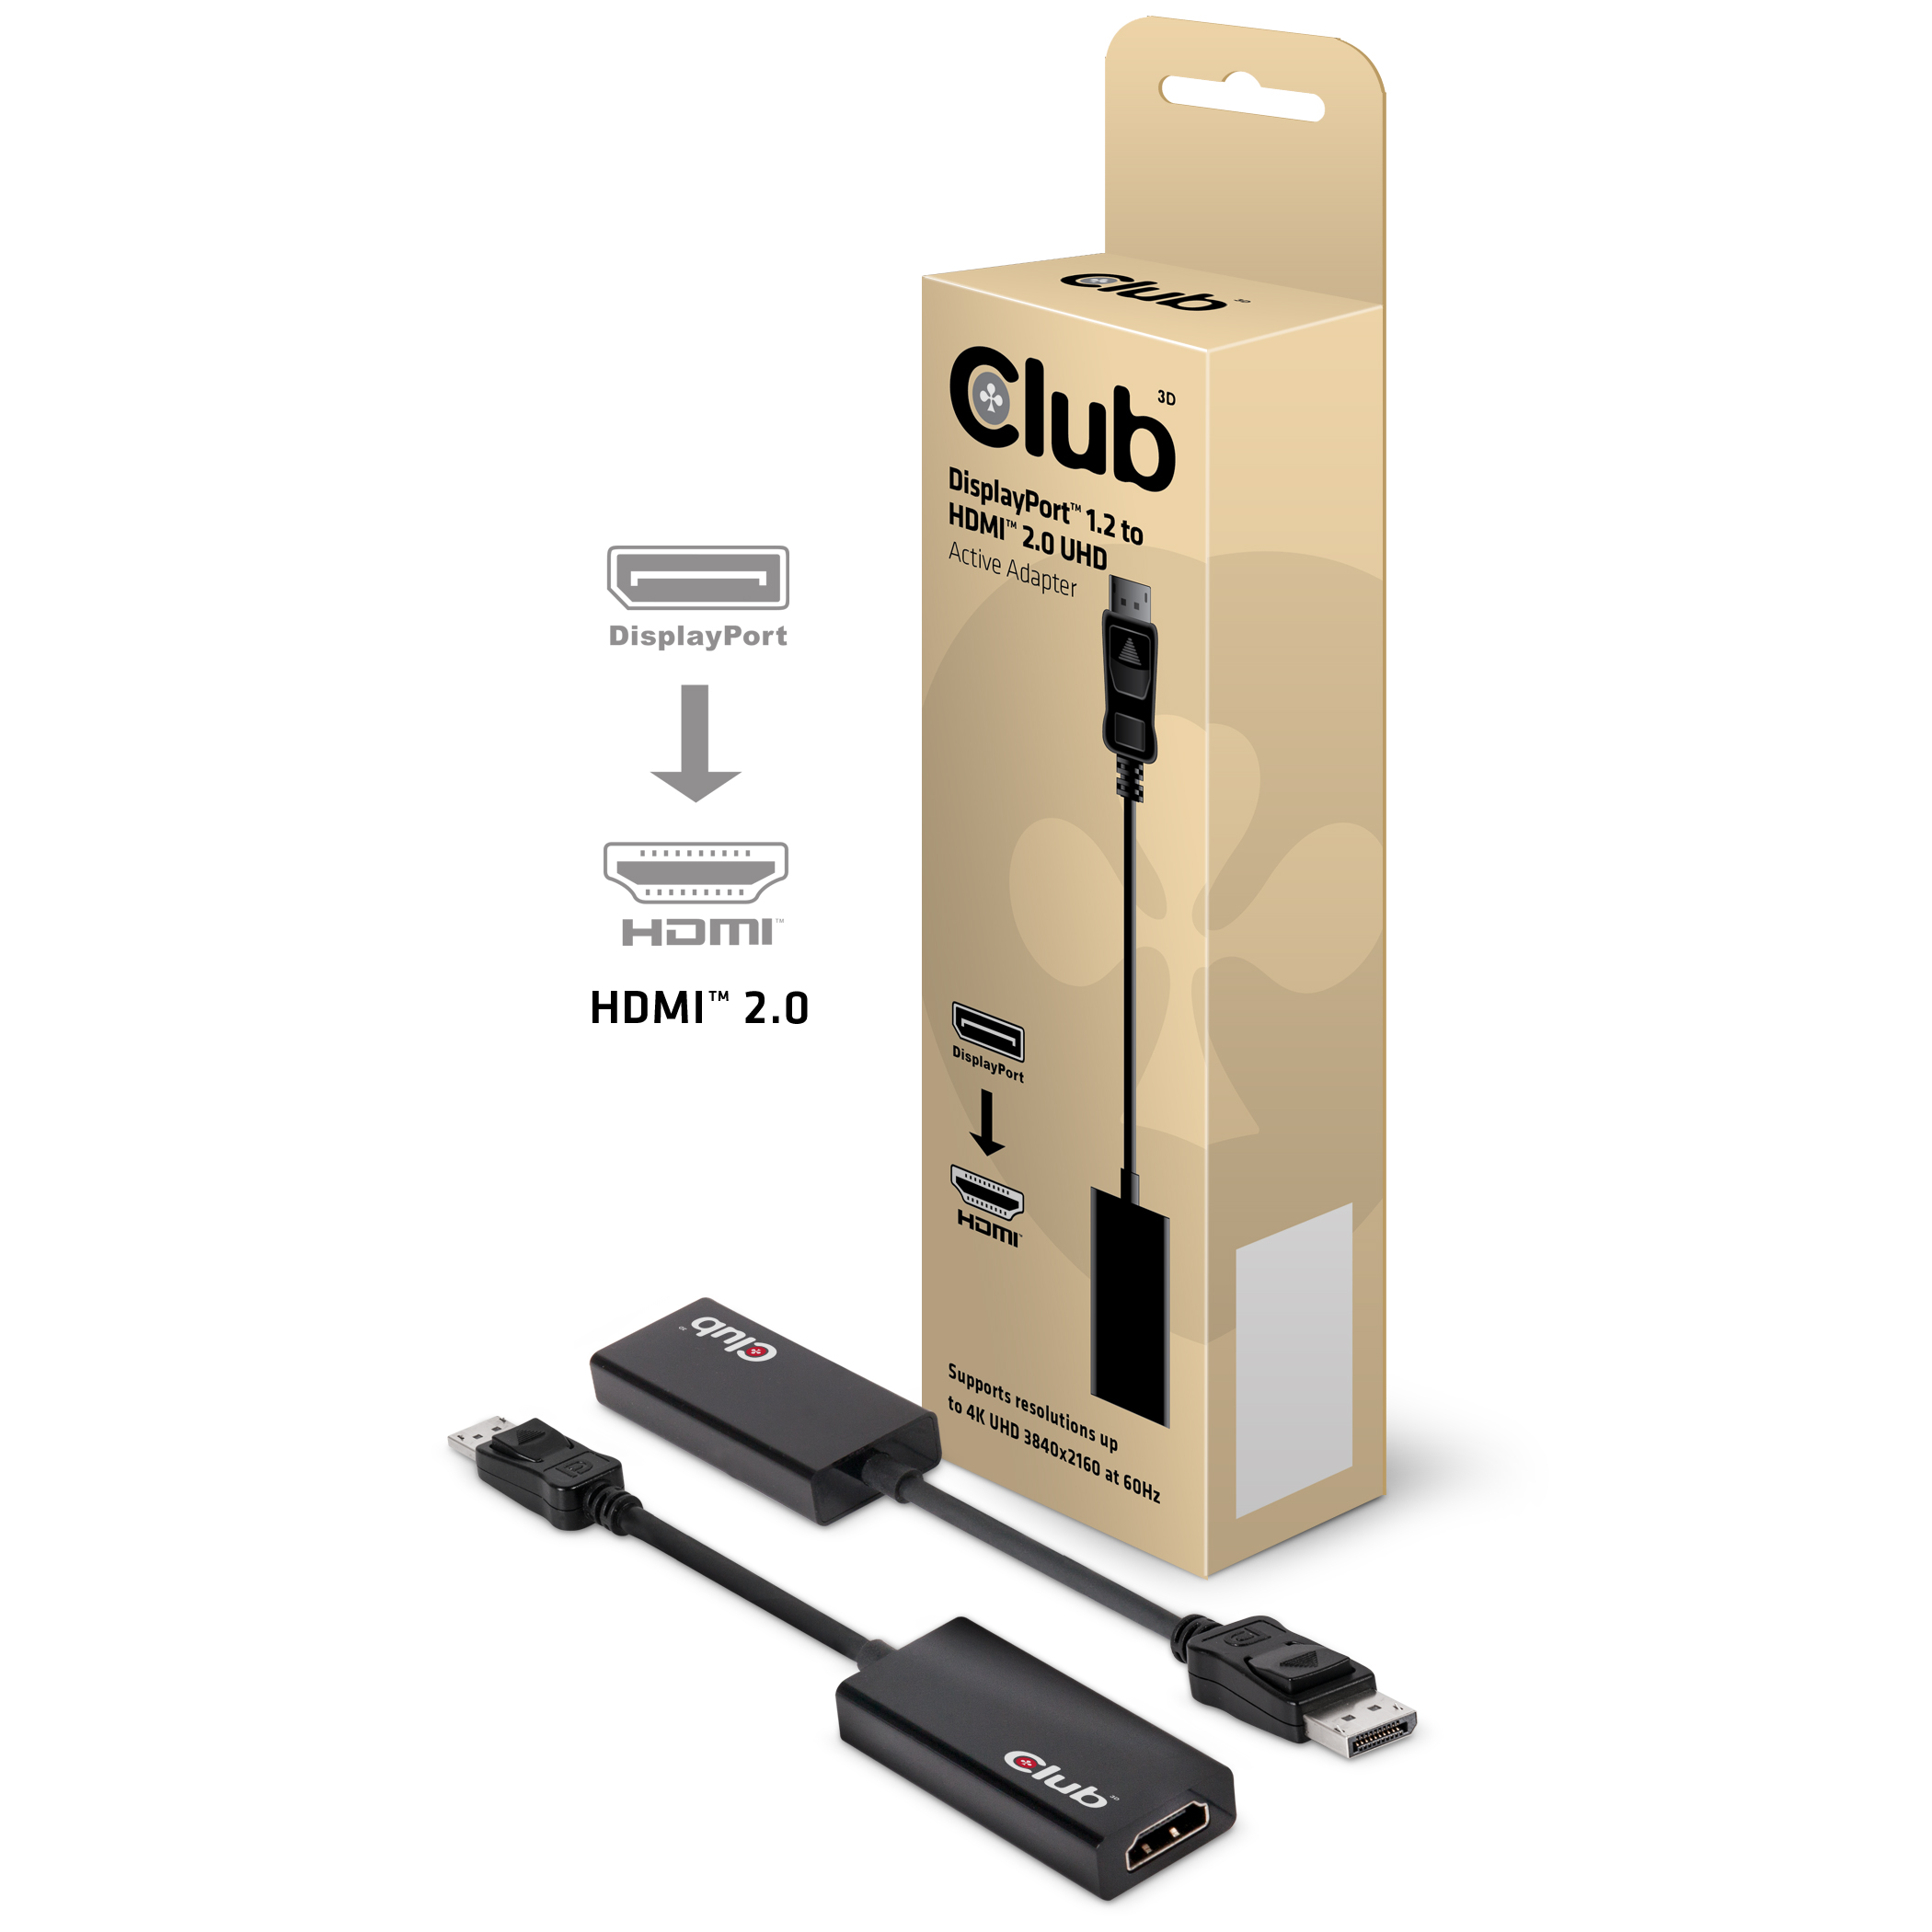 CLUB 3D DISPLAY PORT 1.4 MALE TO HDMI 2.0a FEMALE 4K 60HZ UHD/ 3D ACTIVE ADAPTER - HDR SUPPORT